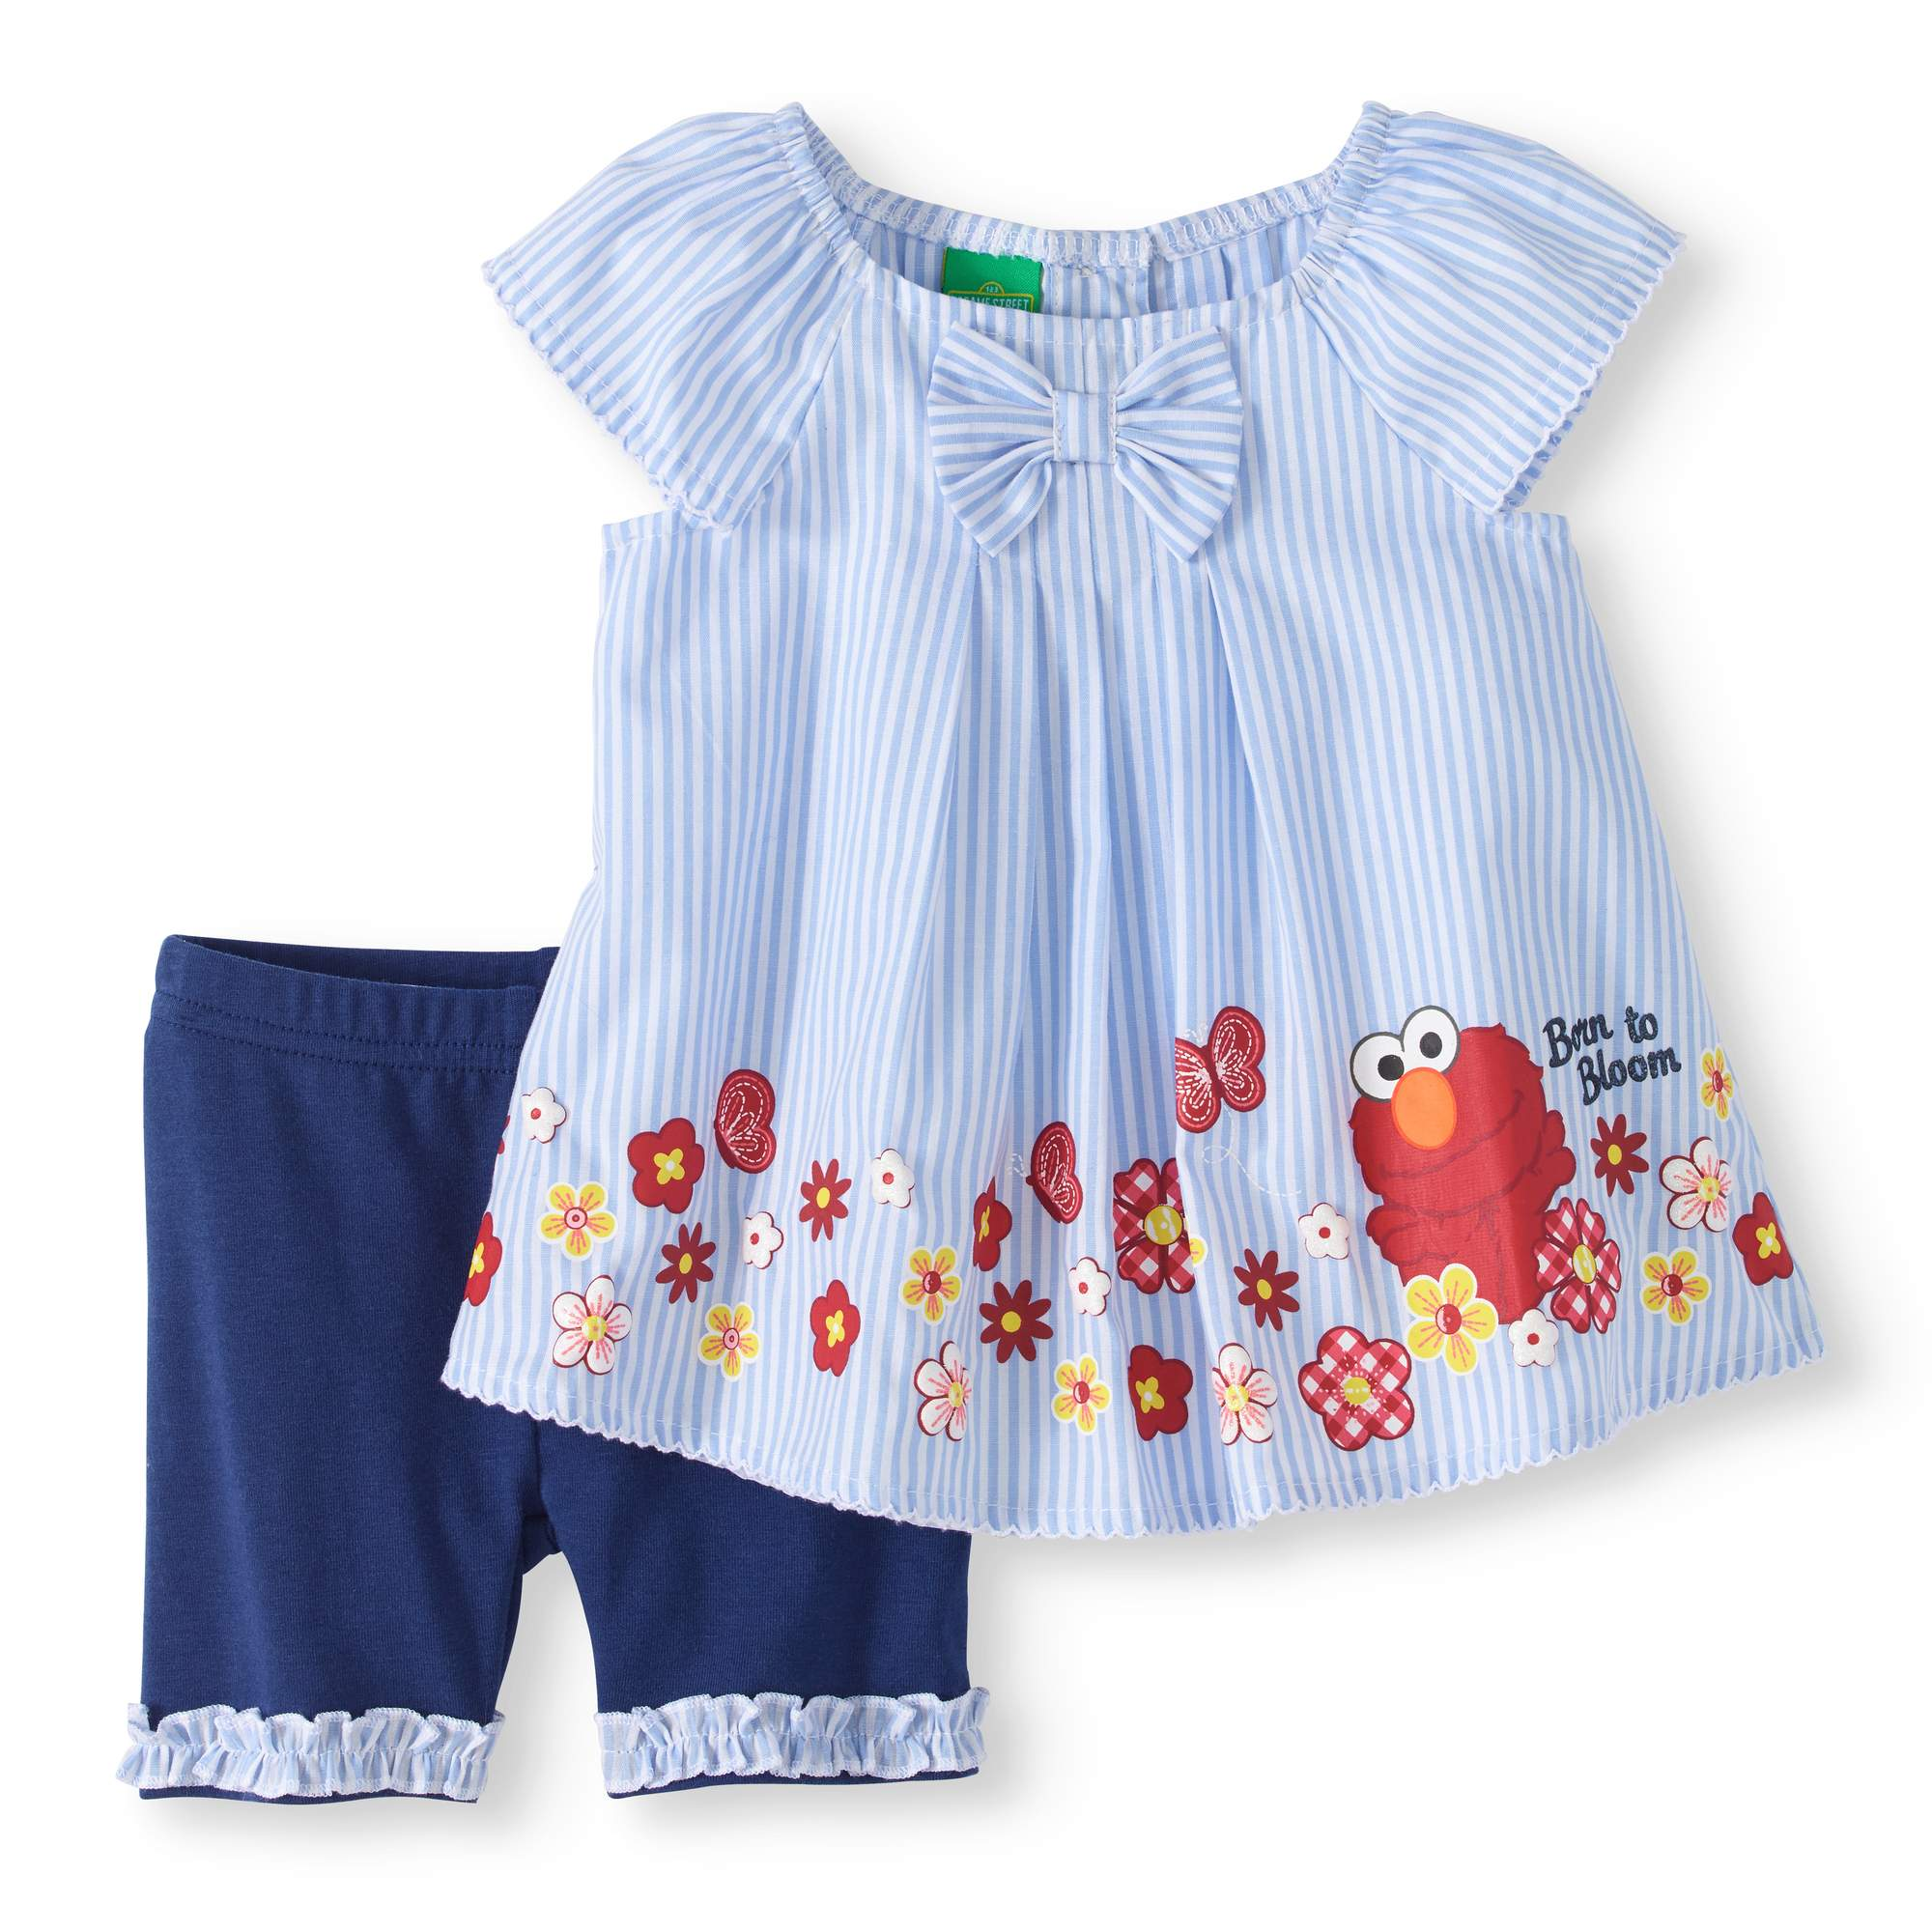 Sesame Street Elmo Baby Girl Sleeveless Poplin Tunic Top & Knit Shorts, 2pc Outfit Set